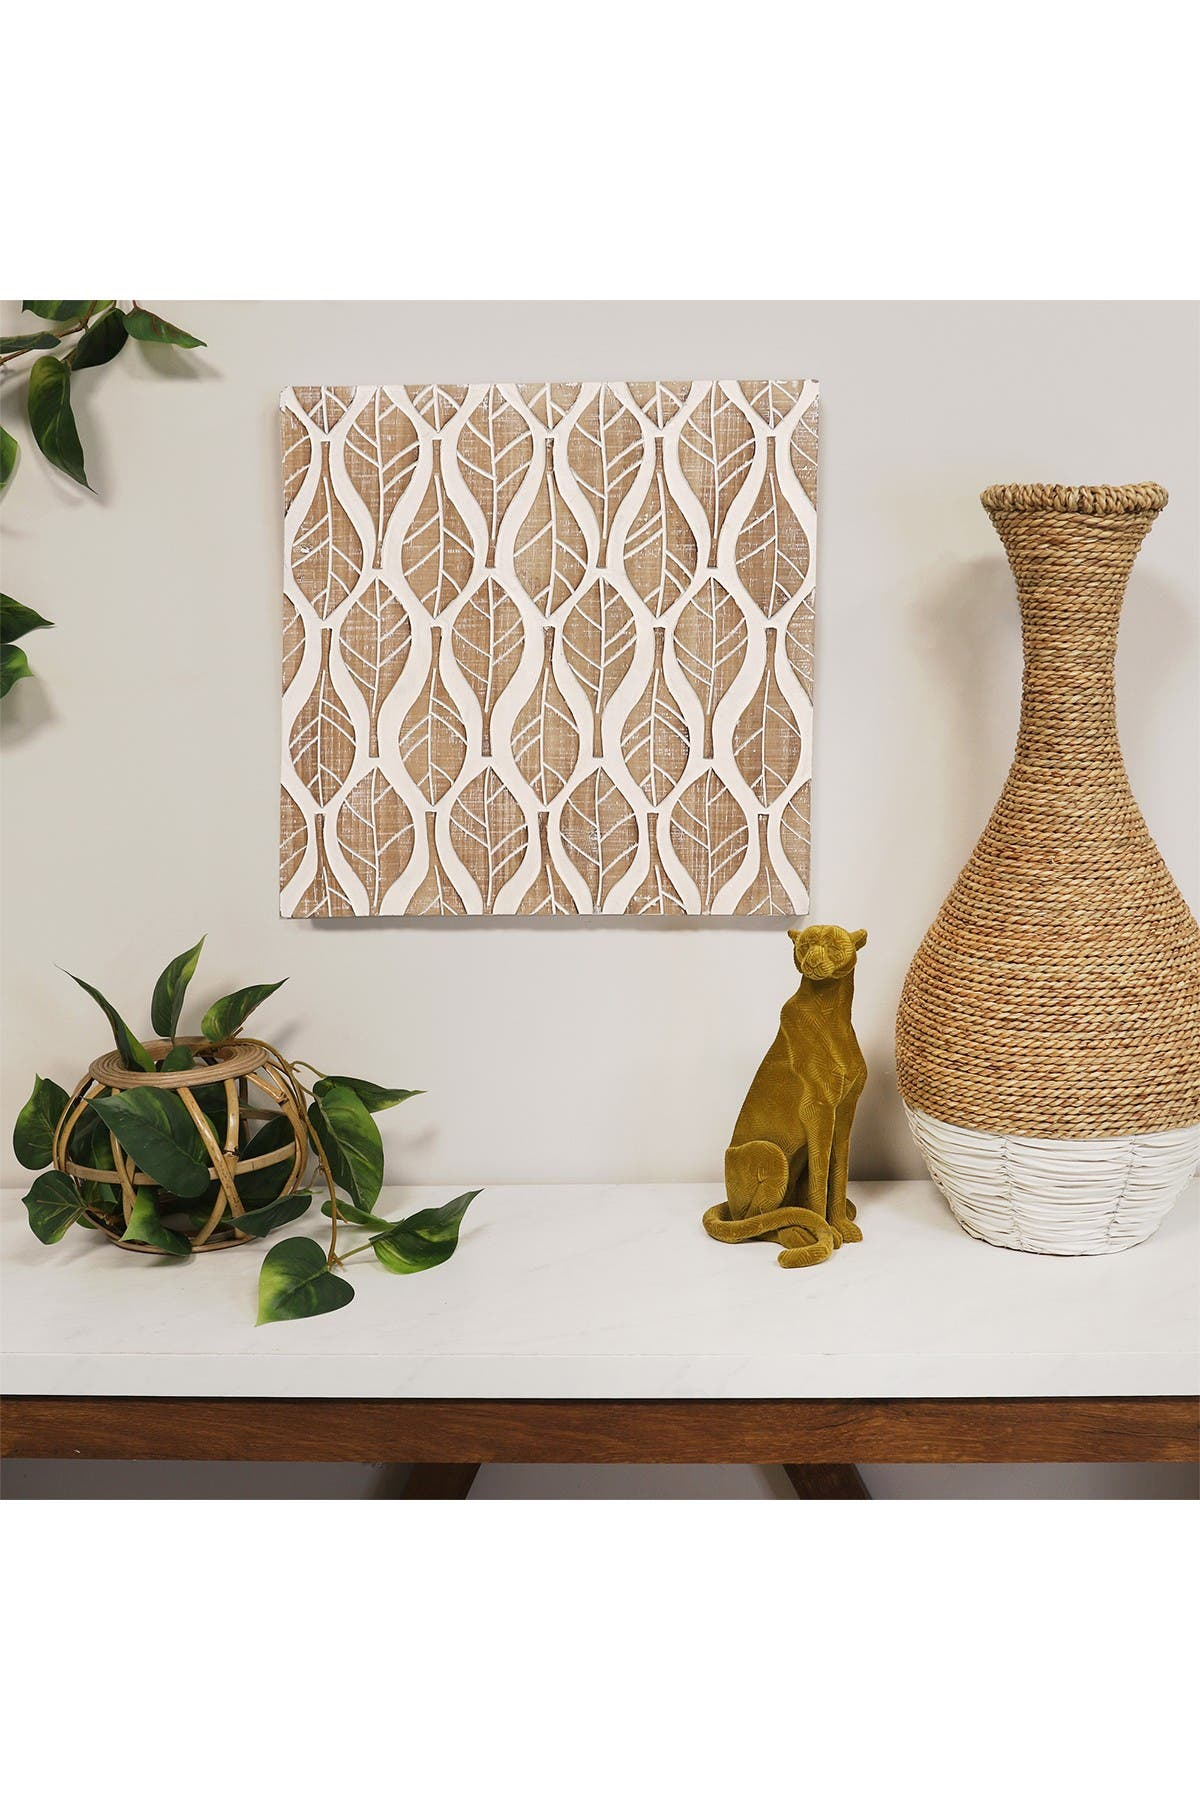 Stratton Home Leaf Patterned Wood Wall Decor Nordstrom Rack